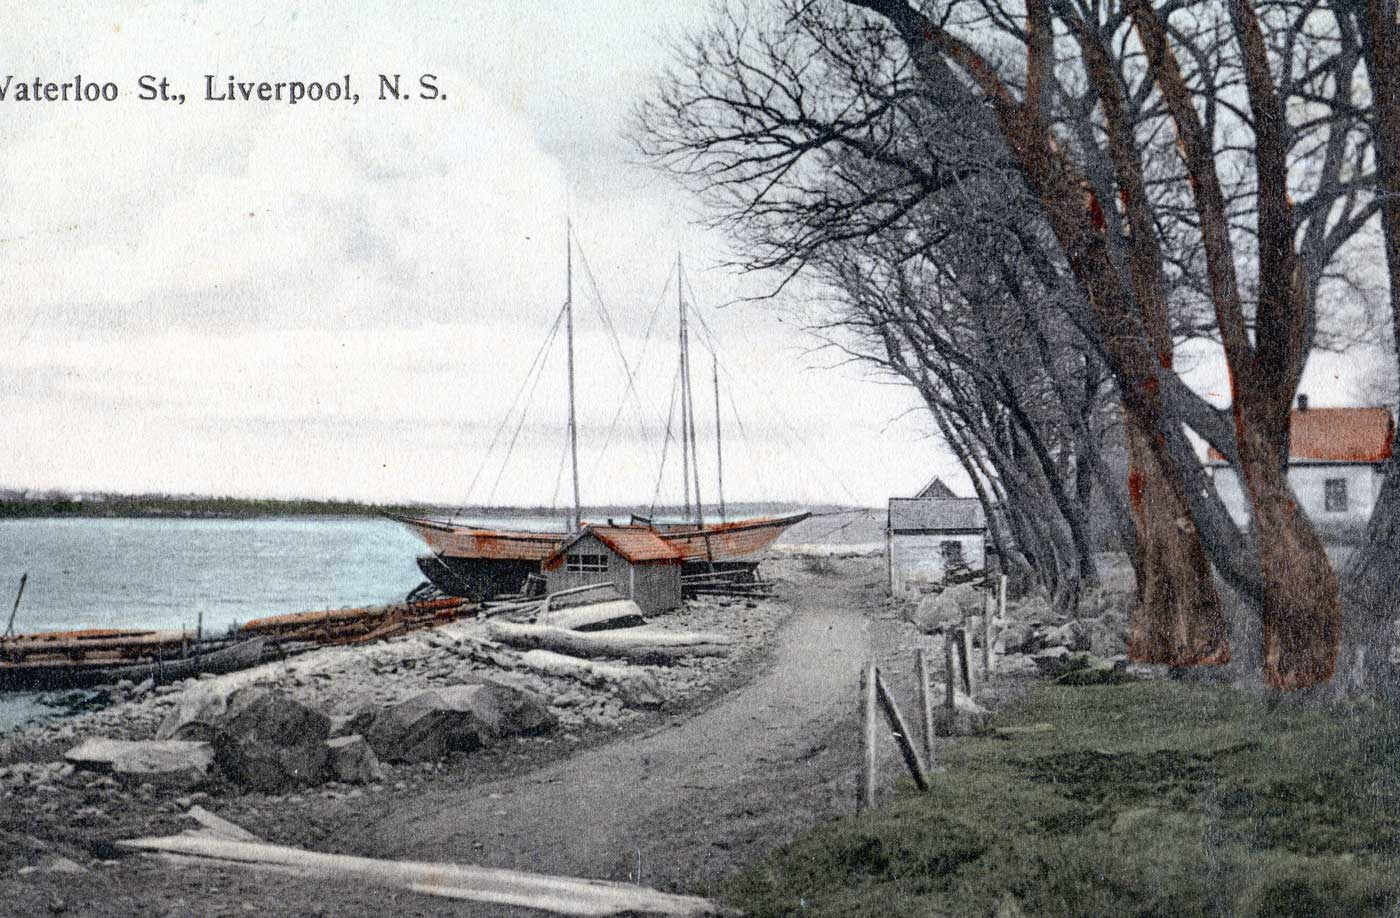 Waterloo Street, Liverpool, NS